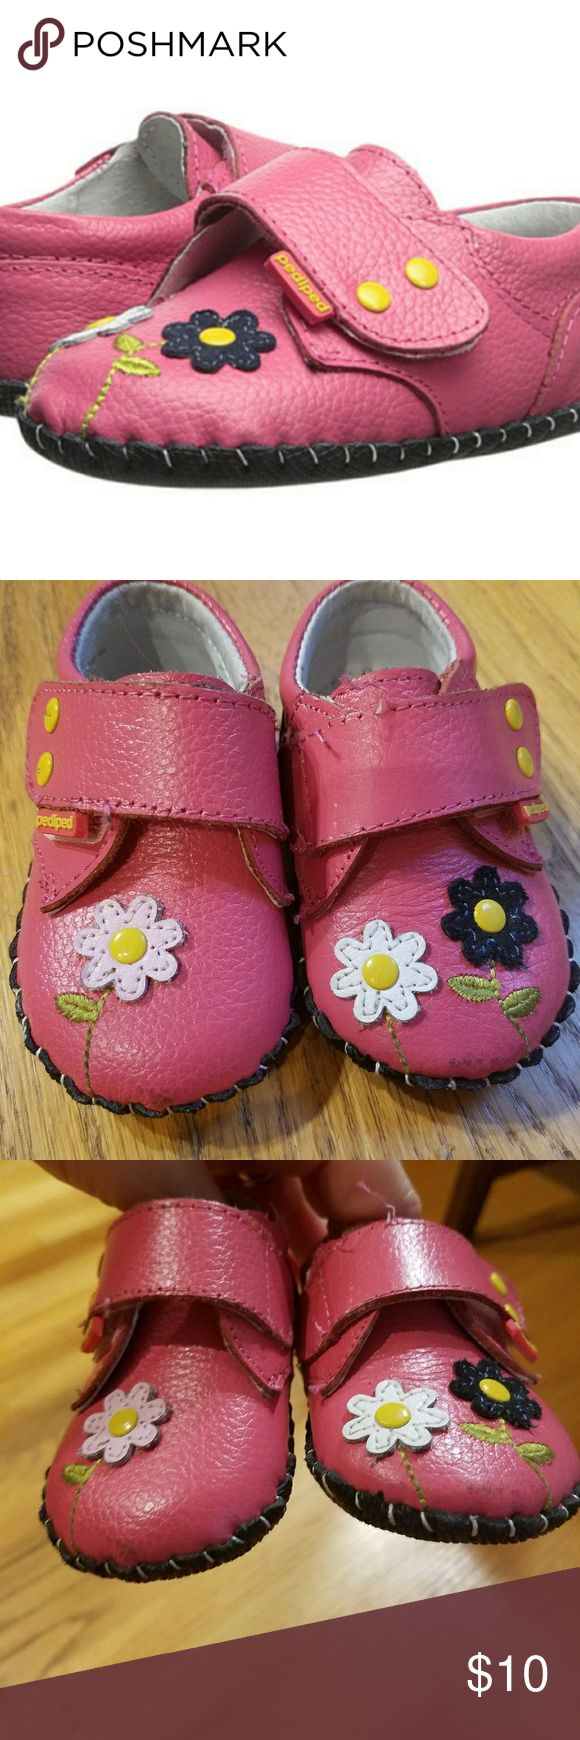 Baby girls pediped shoes size 6-12 months Baby girls Pediped slip on shoes with velcro closure. In good shape, some minor scuffing on toes and heel. Size 6 to 12 months. All of my items come from a smoke-free and pet-free home. pediped Shoes Baby & Walker